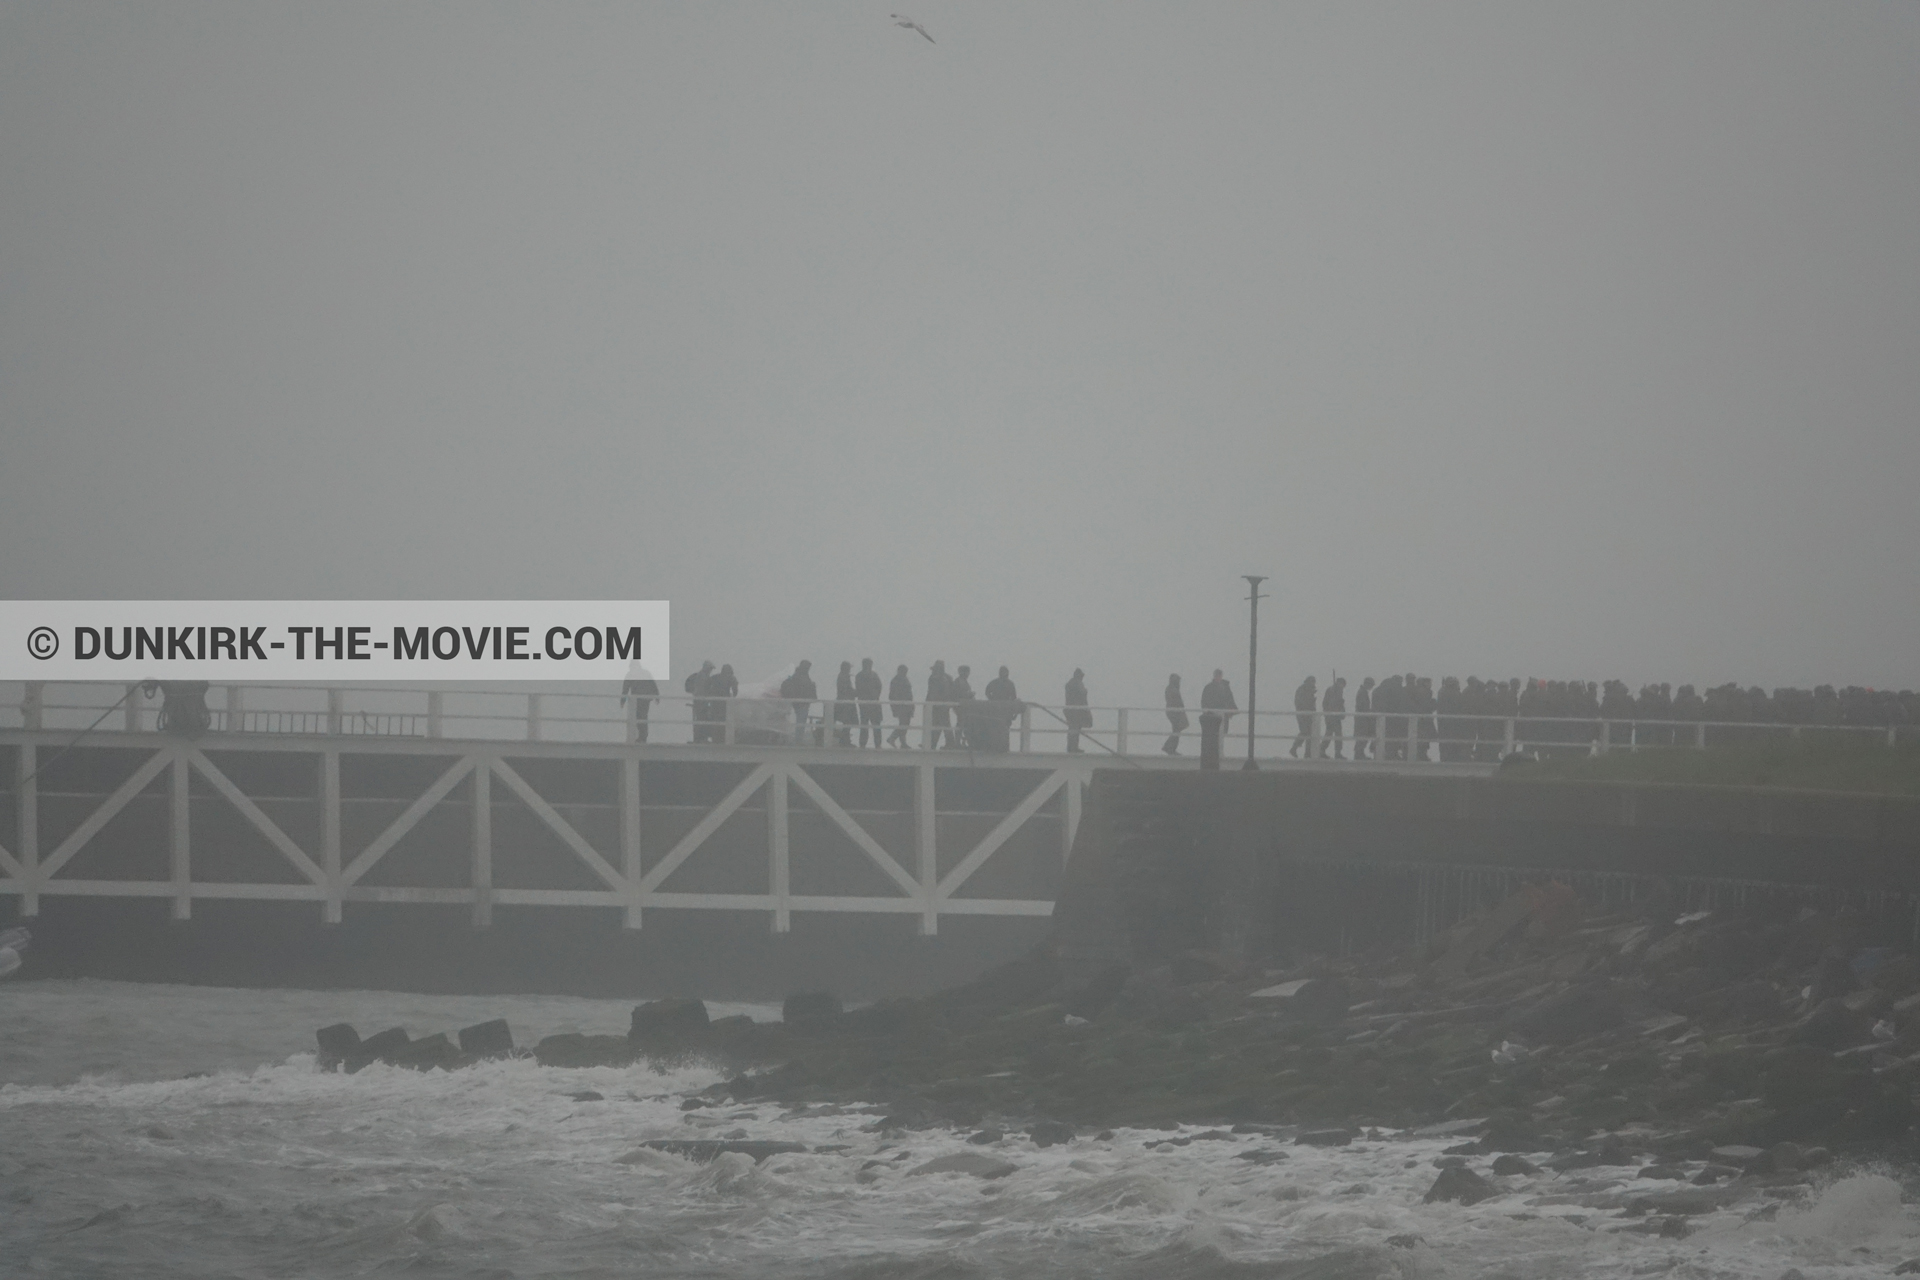 Picture with grey sky, supernumeraries, EST pier, rough sea,  from behind the scene of the Dunkirk movie by Nolan